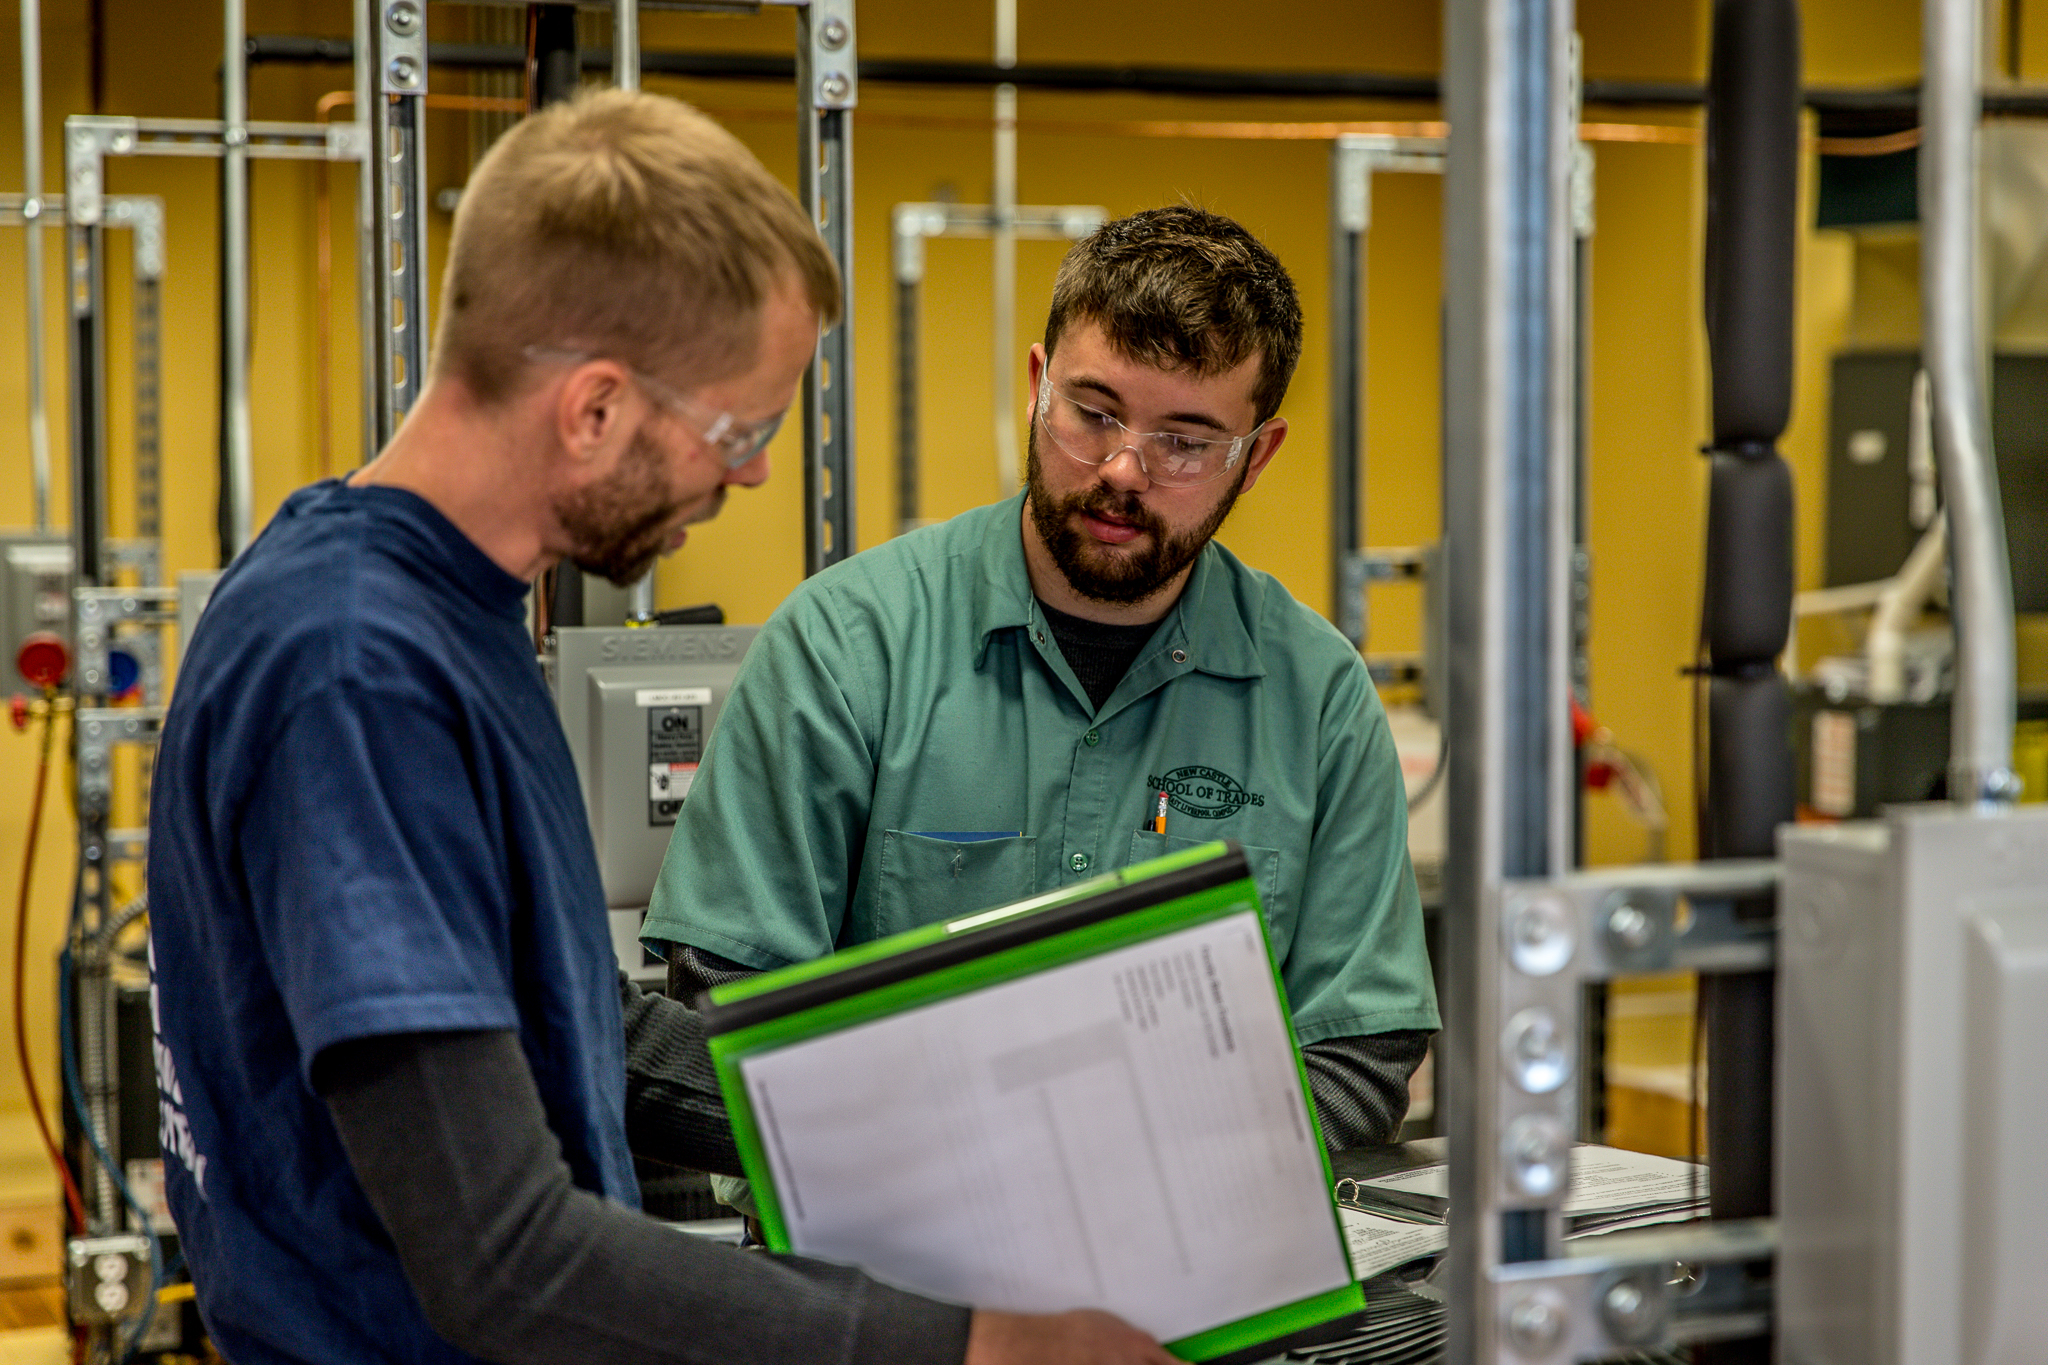 Refrigeration and Climate Control - This program is designed to provide students with the entry level knowledge and skills to install and repair: heating, air conditioning and commercial/residential refrigeration equipment. The program covers in practice and theory the electrical requirements from power sources to circuits, diagnosing, troubleshooting, and installation of RHVAC.